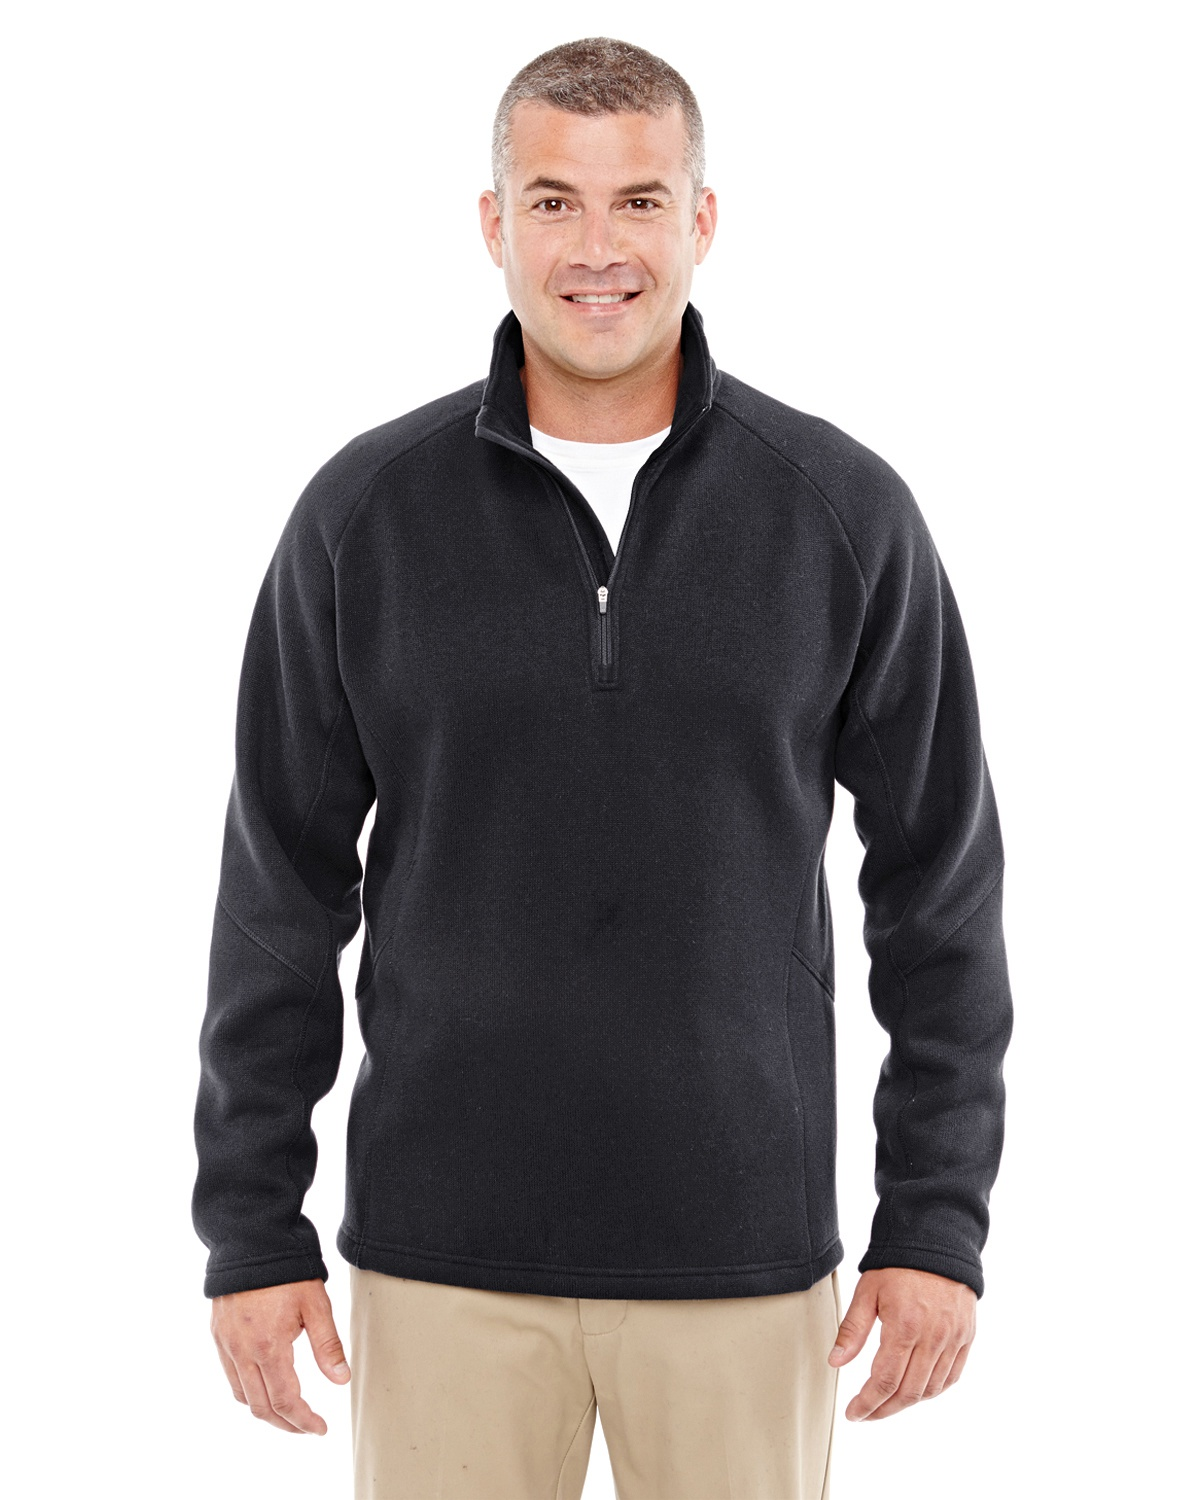 'Devon & Jones DG792 Adult Bristol Sweater Fleece Quarter-Zip'